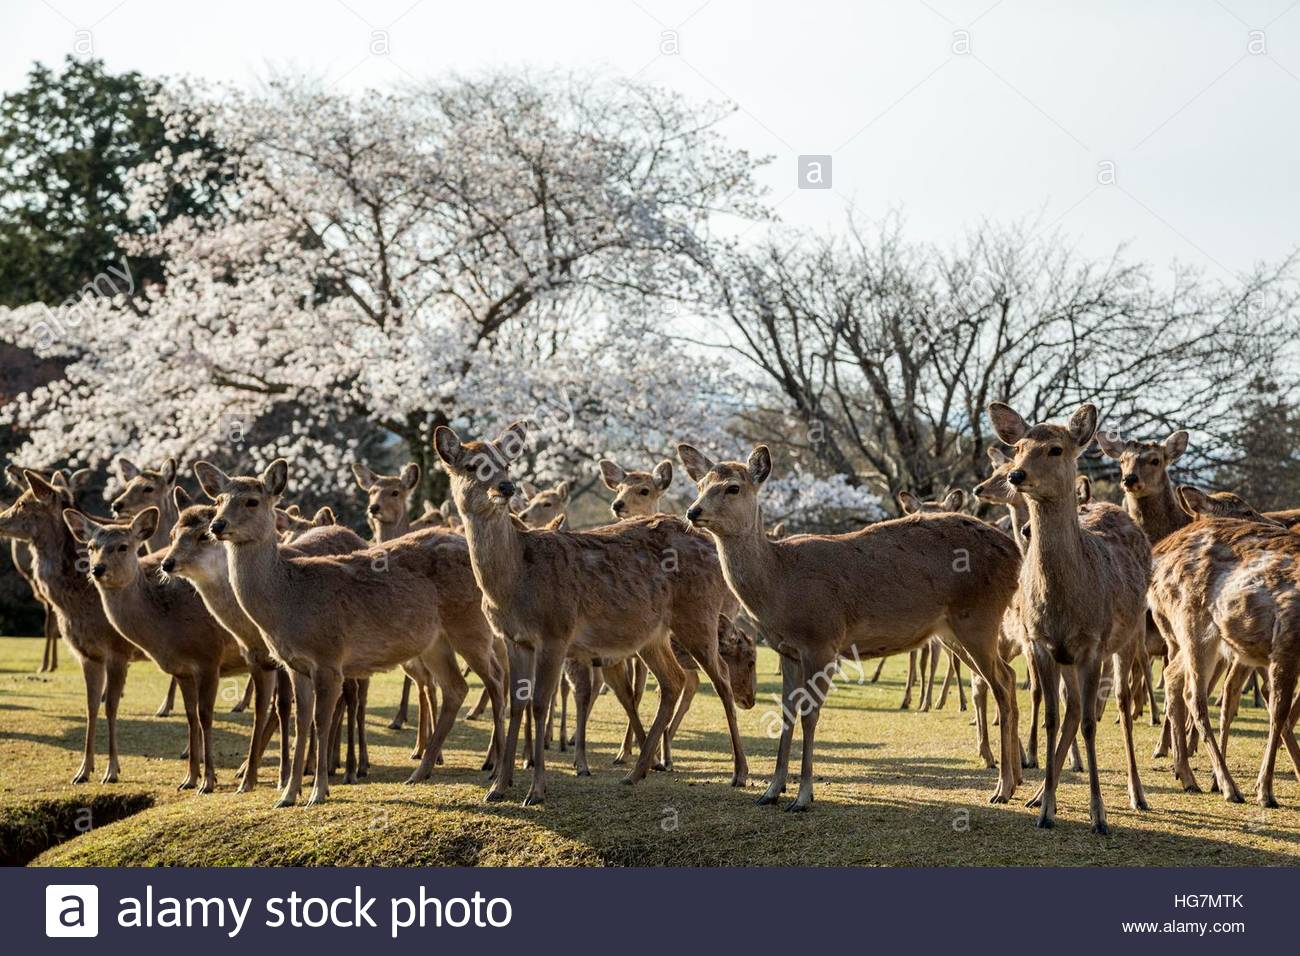 Japanese spotted deer, believed to be messengers of the gods, and cherry blossoms in Nara Park. - Stock Image